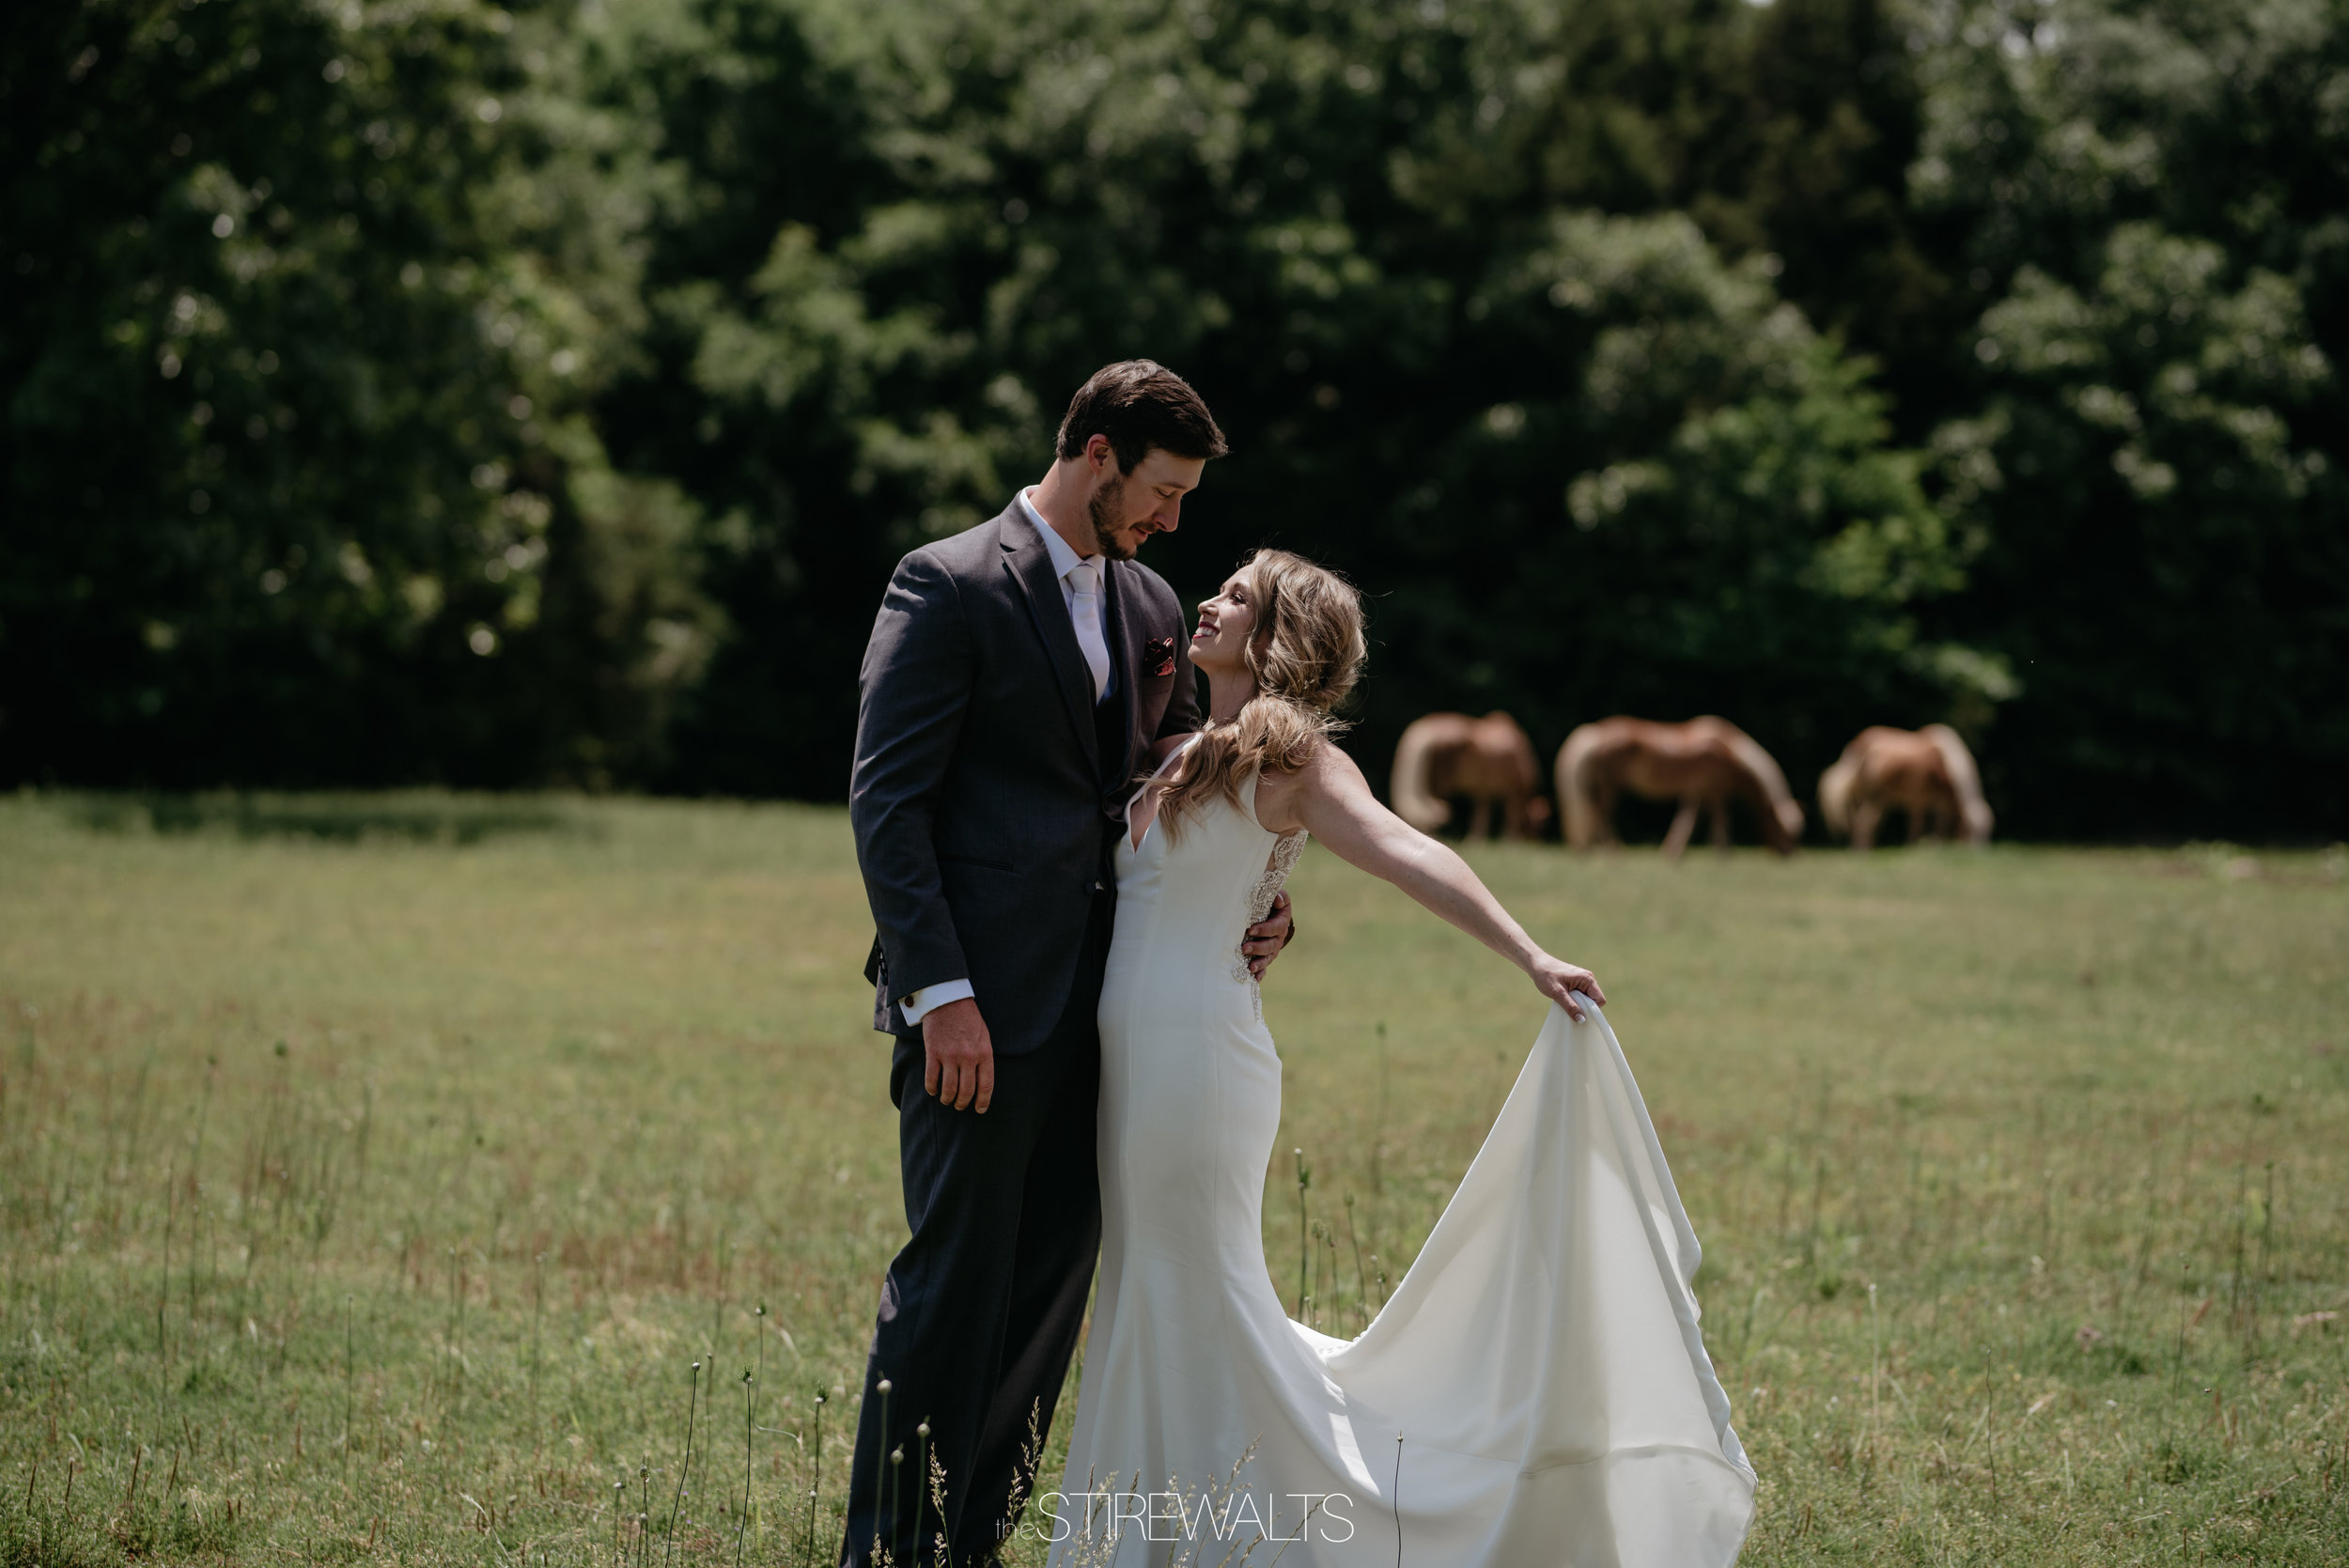 Kayla.Jay.Wedding.Blog.2018.©TheStirewalts-52.jpg